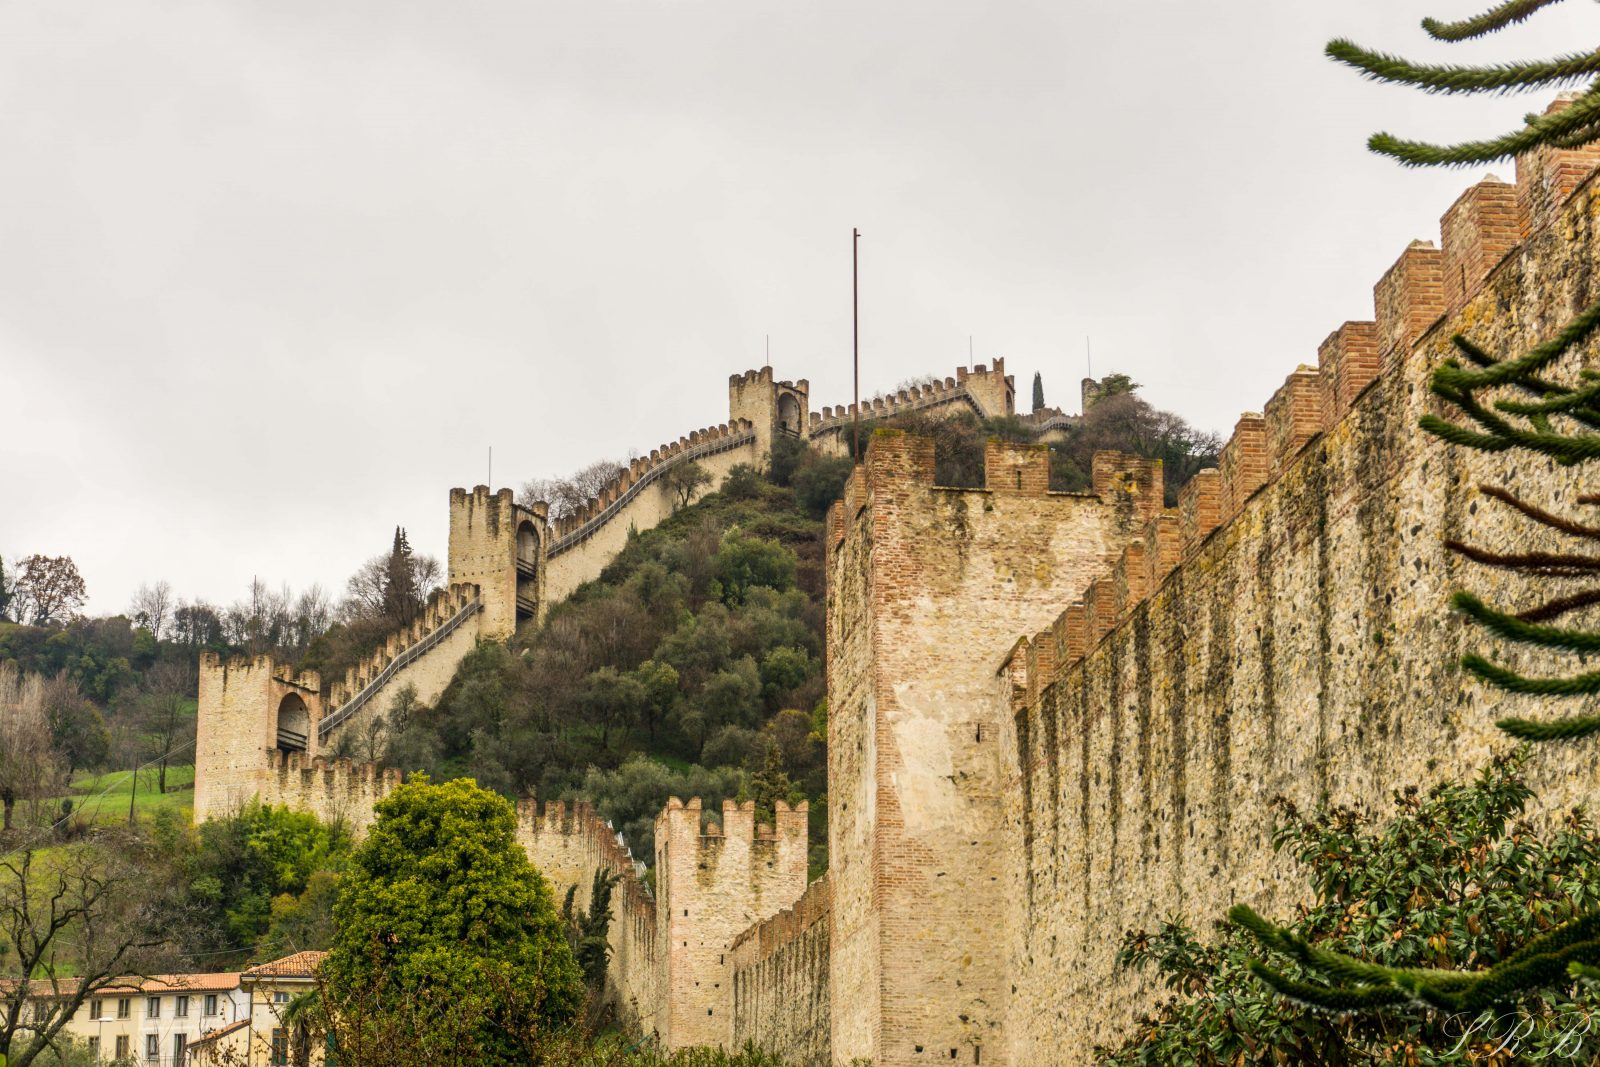 Marostica, Province of Vicenza, Italy